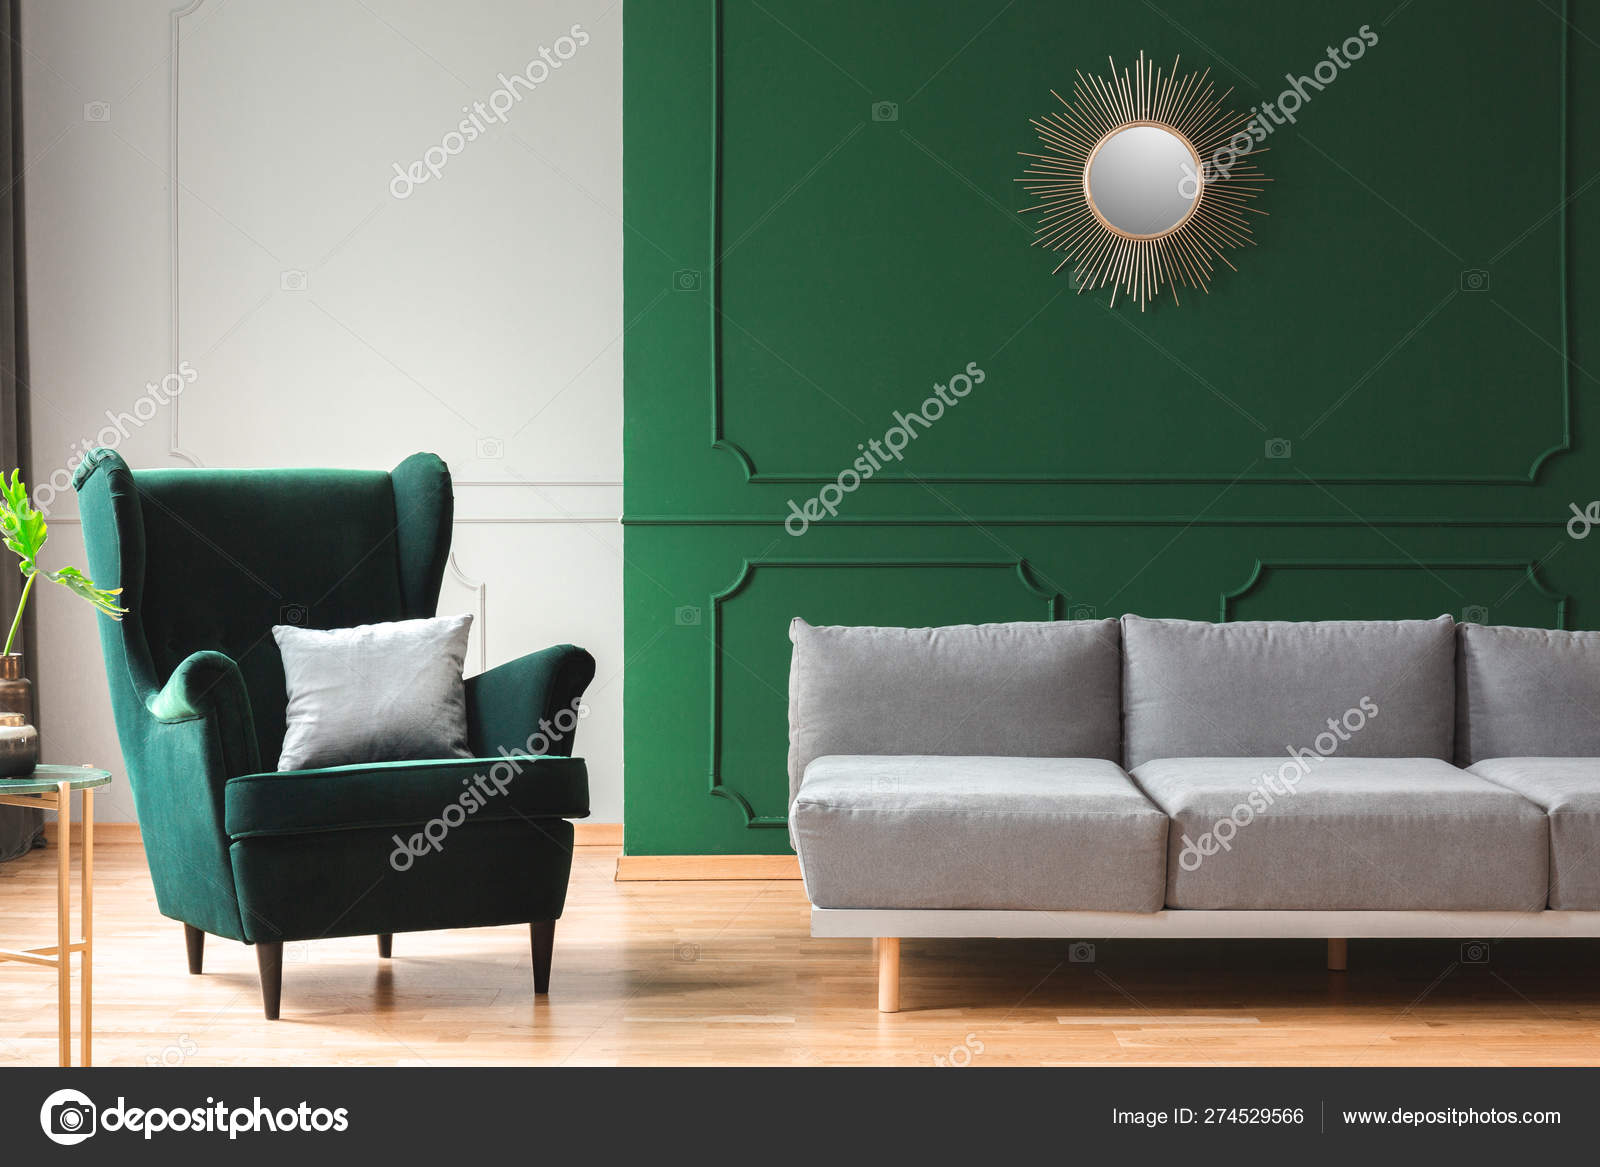 Super Elegant Living Room Interior With Emerald Green Chair With Gmtry Best Dining Table And Chair Ideas Images Gmtryco